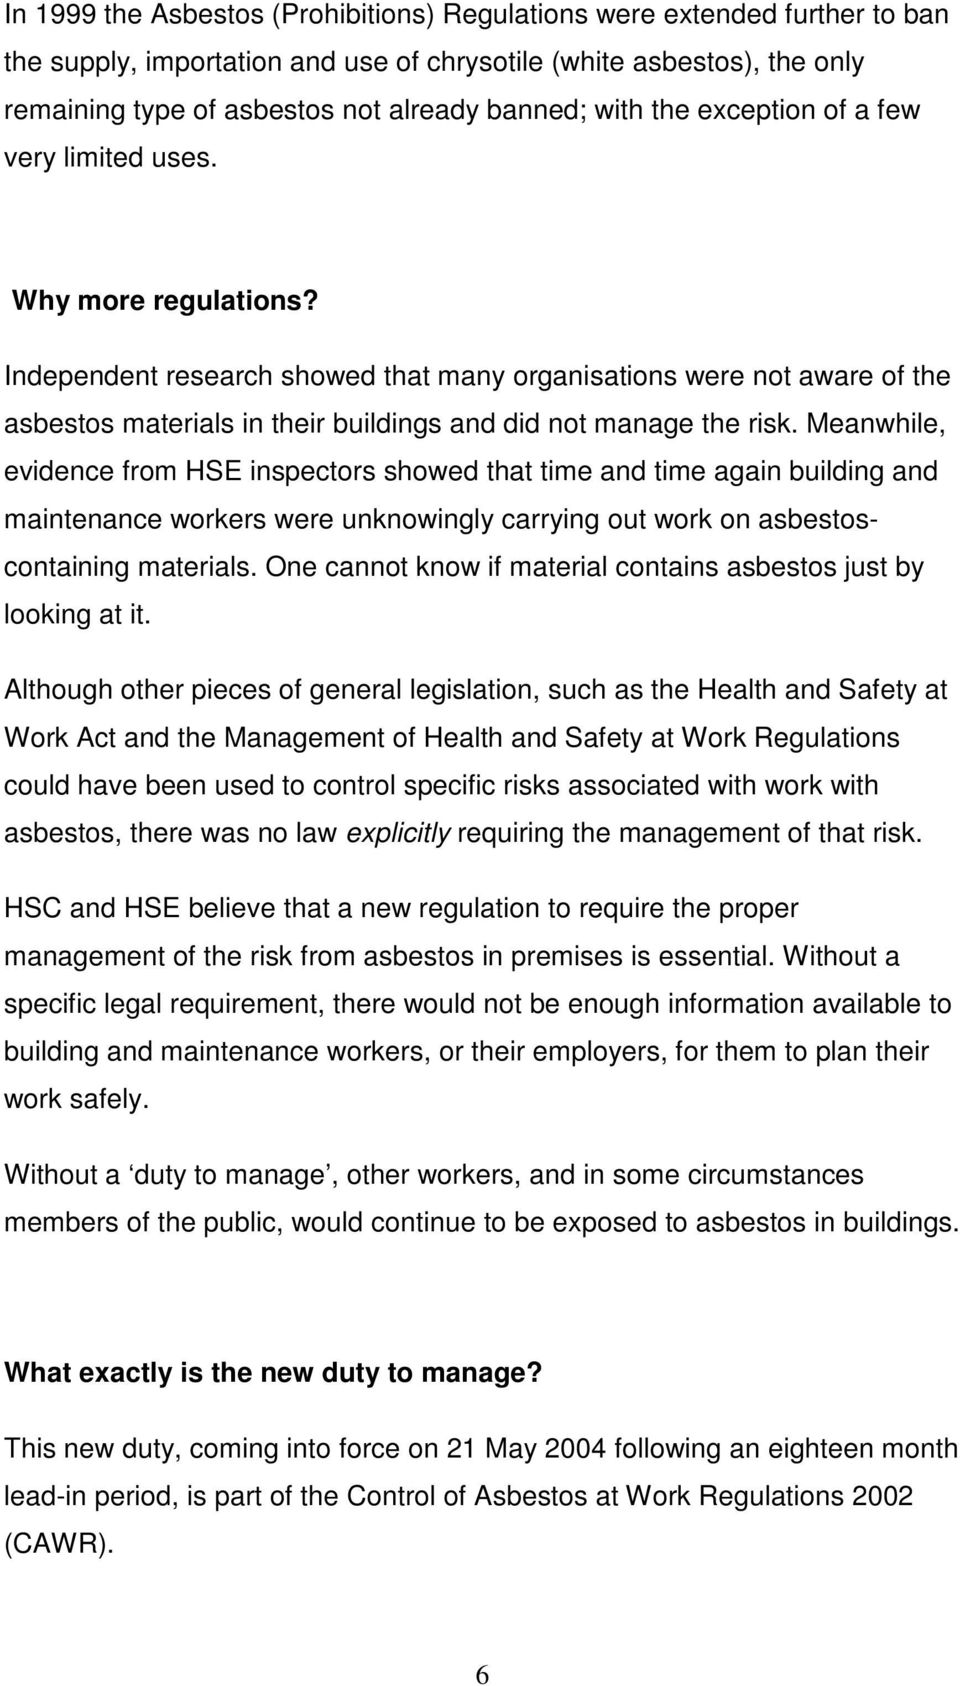 Independent research showed that many organisations were not aware of the asbestos materials in their buildings and did not manage the risk.